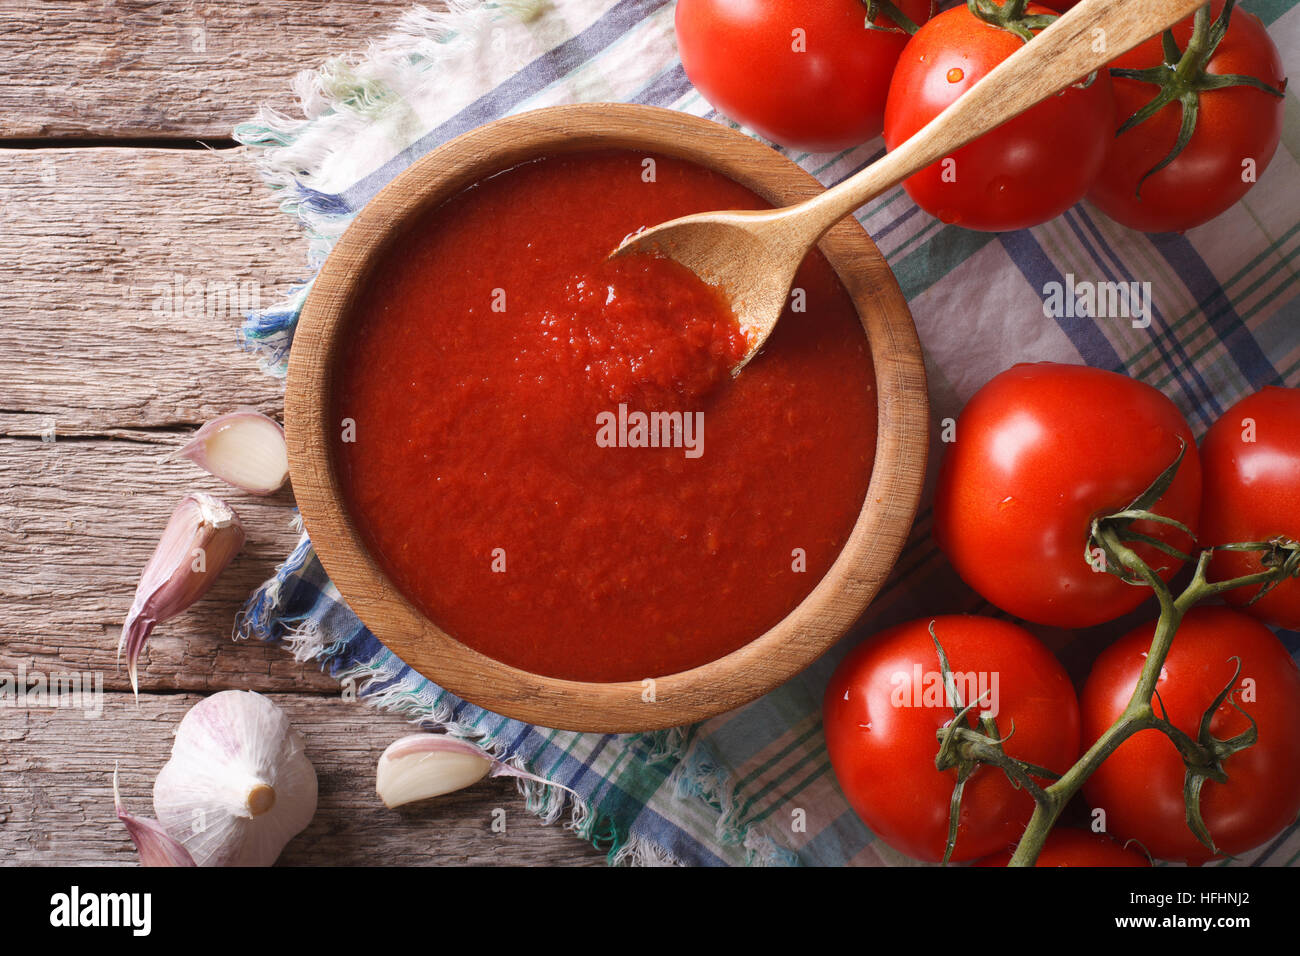 tomato sauce with garlic and basil in a wooden bowl closeup. horizontal view from above - Stock Image